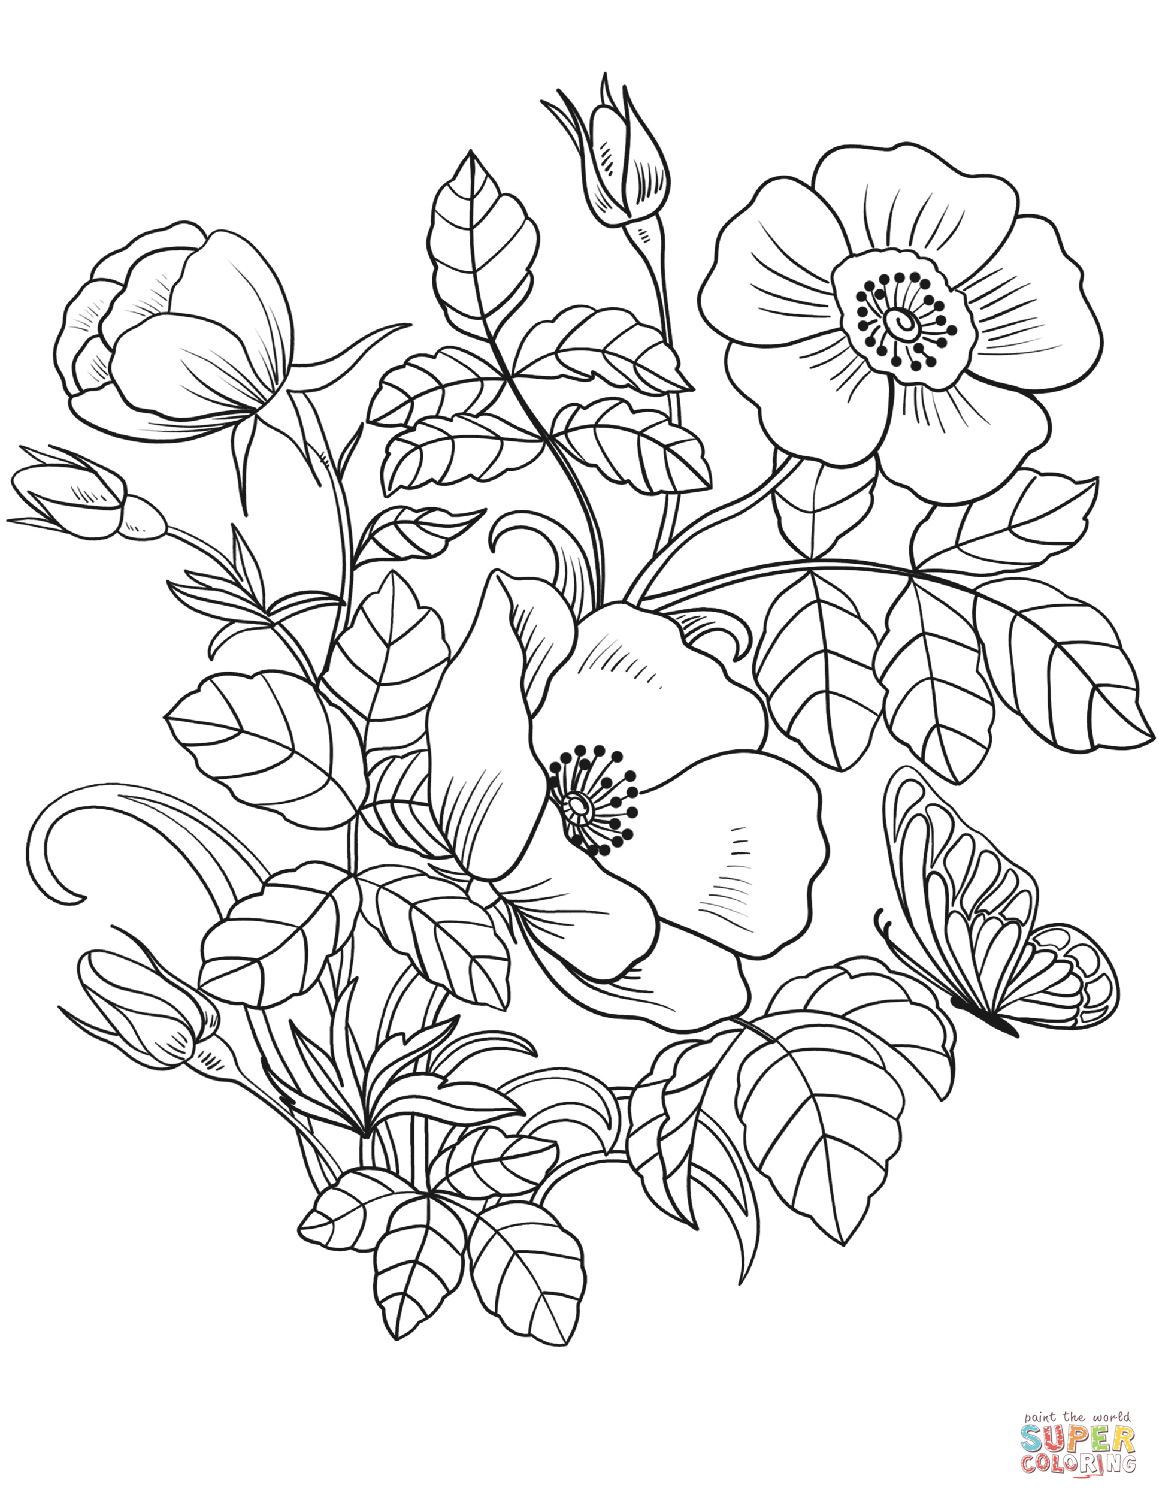 Spring Flowers Coloring Page | Free Printable Coloring Pages - Printable Flower Puzzle